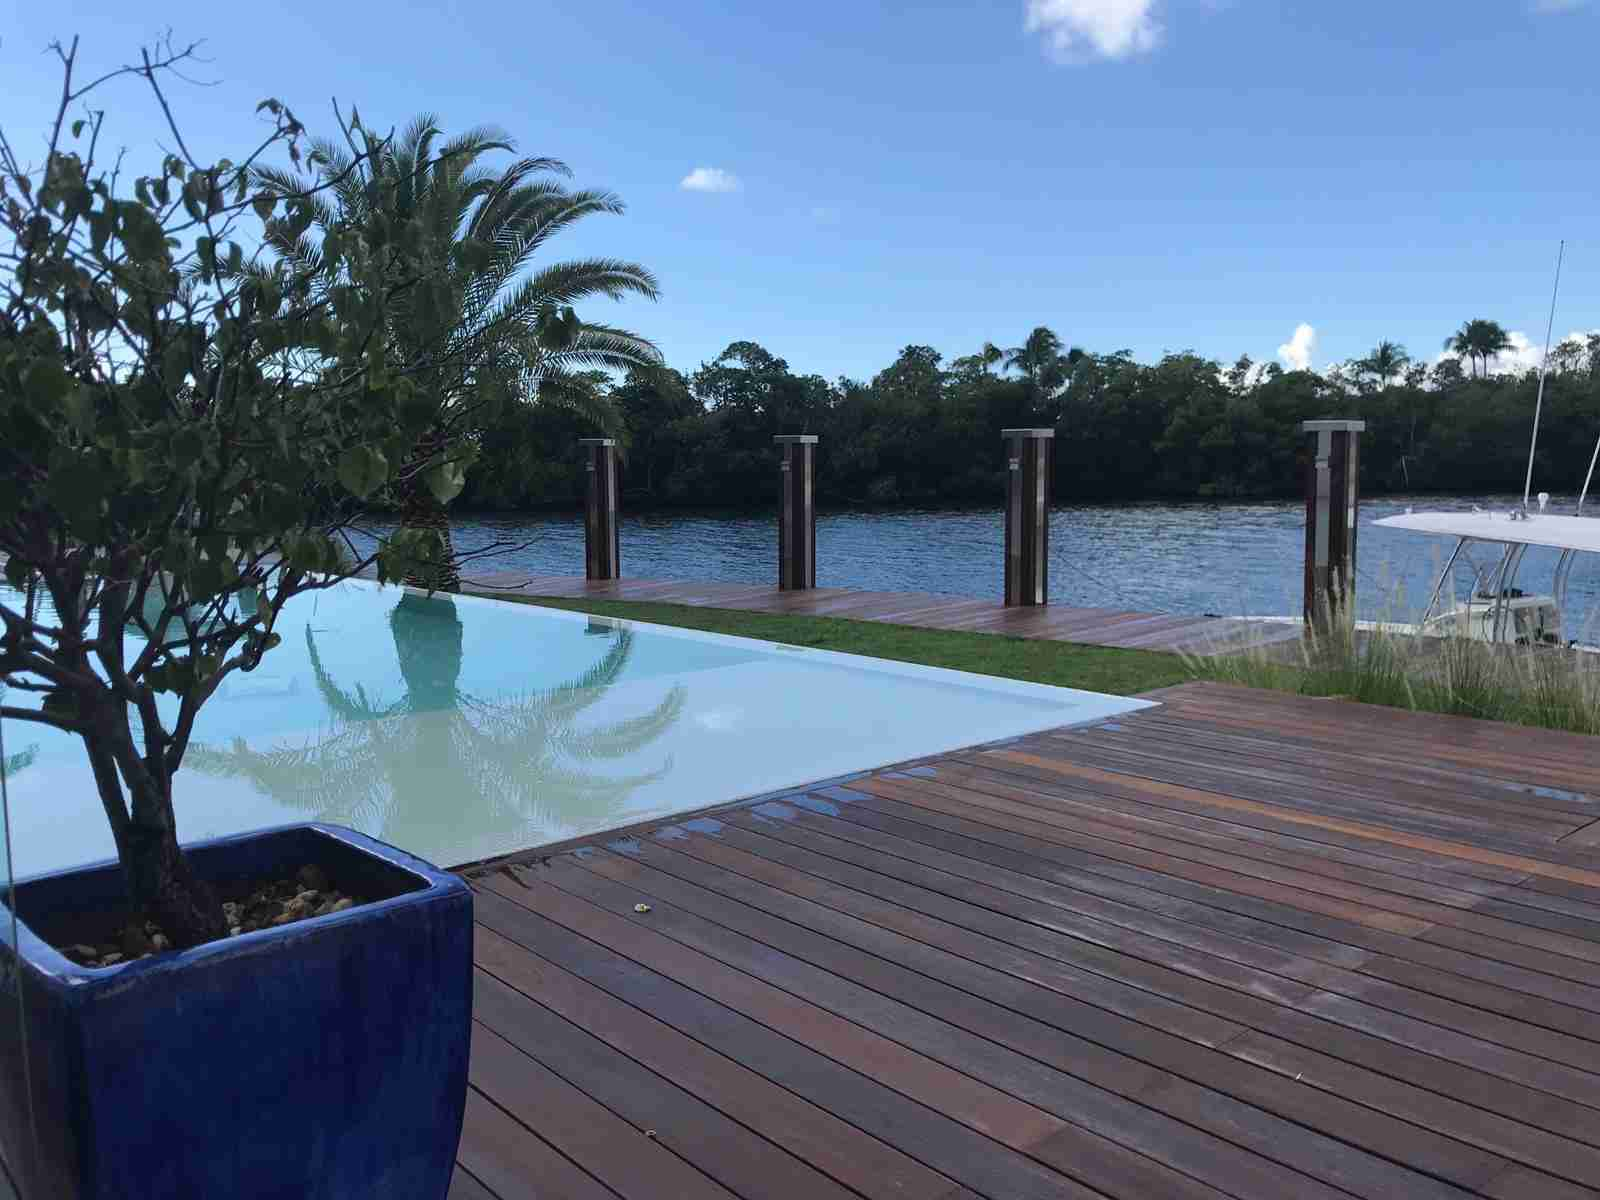 Ipe Hardwood Pool Deck With Matching Ipe Dock Overlooking The Intercostal Brazilian Lumber